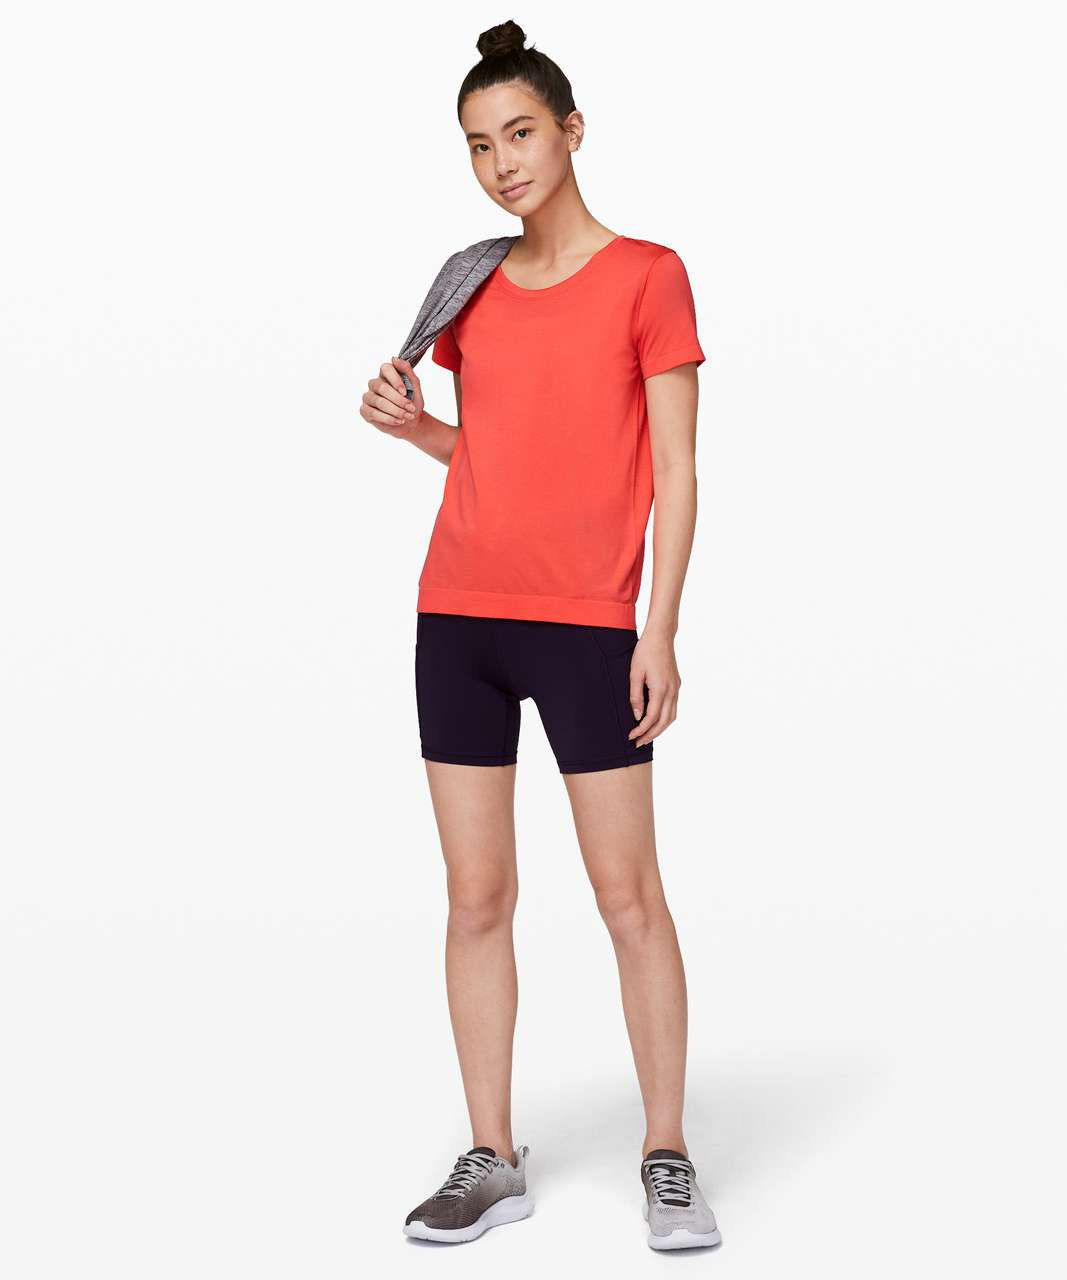 Lululemon Swiftly Tech Short Sleeve (Breeze) *Relaxed Fit - Hot Sunset / Hot Sunset